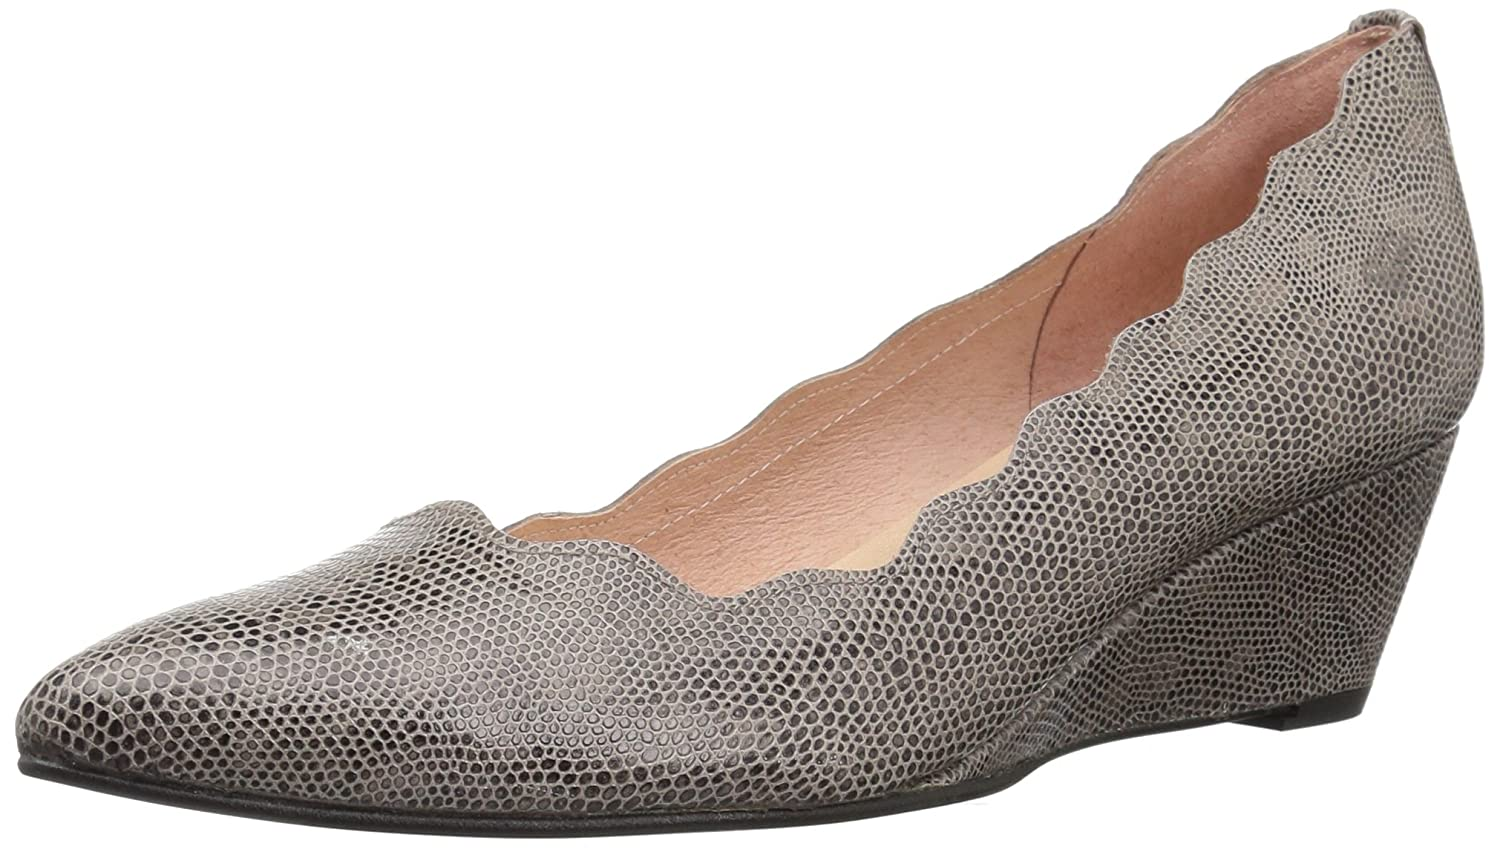 French Sole FS/NY Women's Terrazzo2 Platform B0763ZFJ1S 10.5 B(M) US|Natural